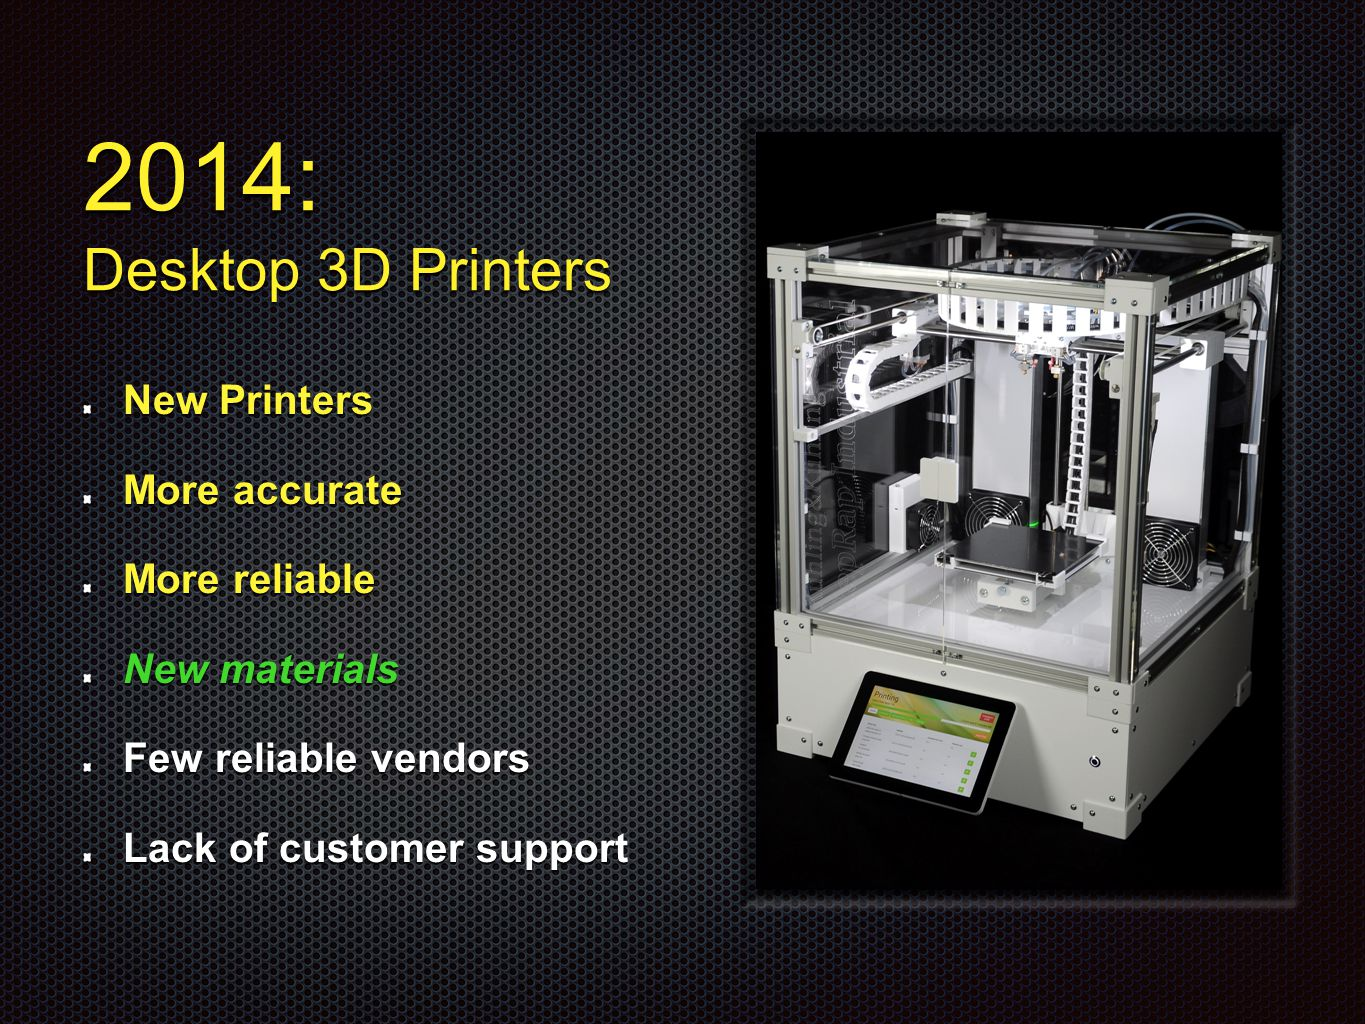 2014: Desktop 3D Printers New Printers More accurate More reliable New materials Few reliable vendors Lack of customer support